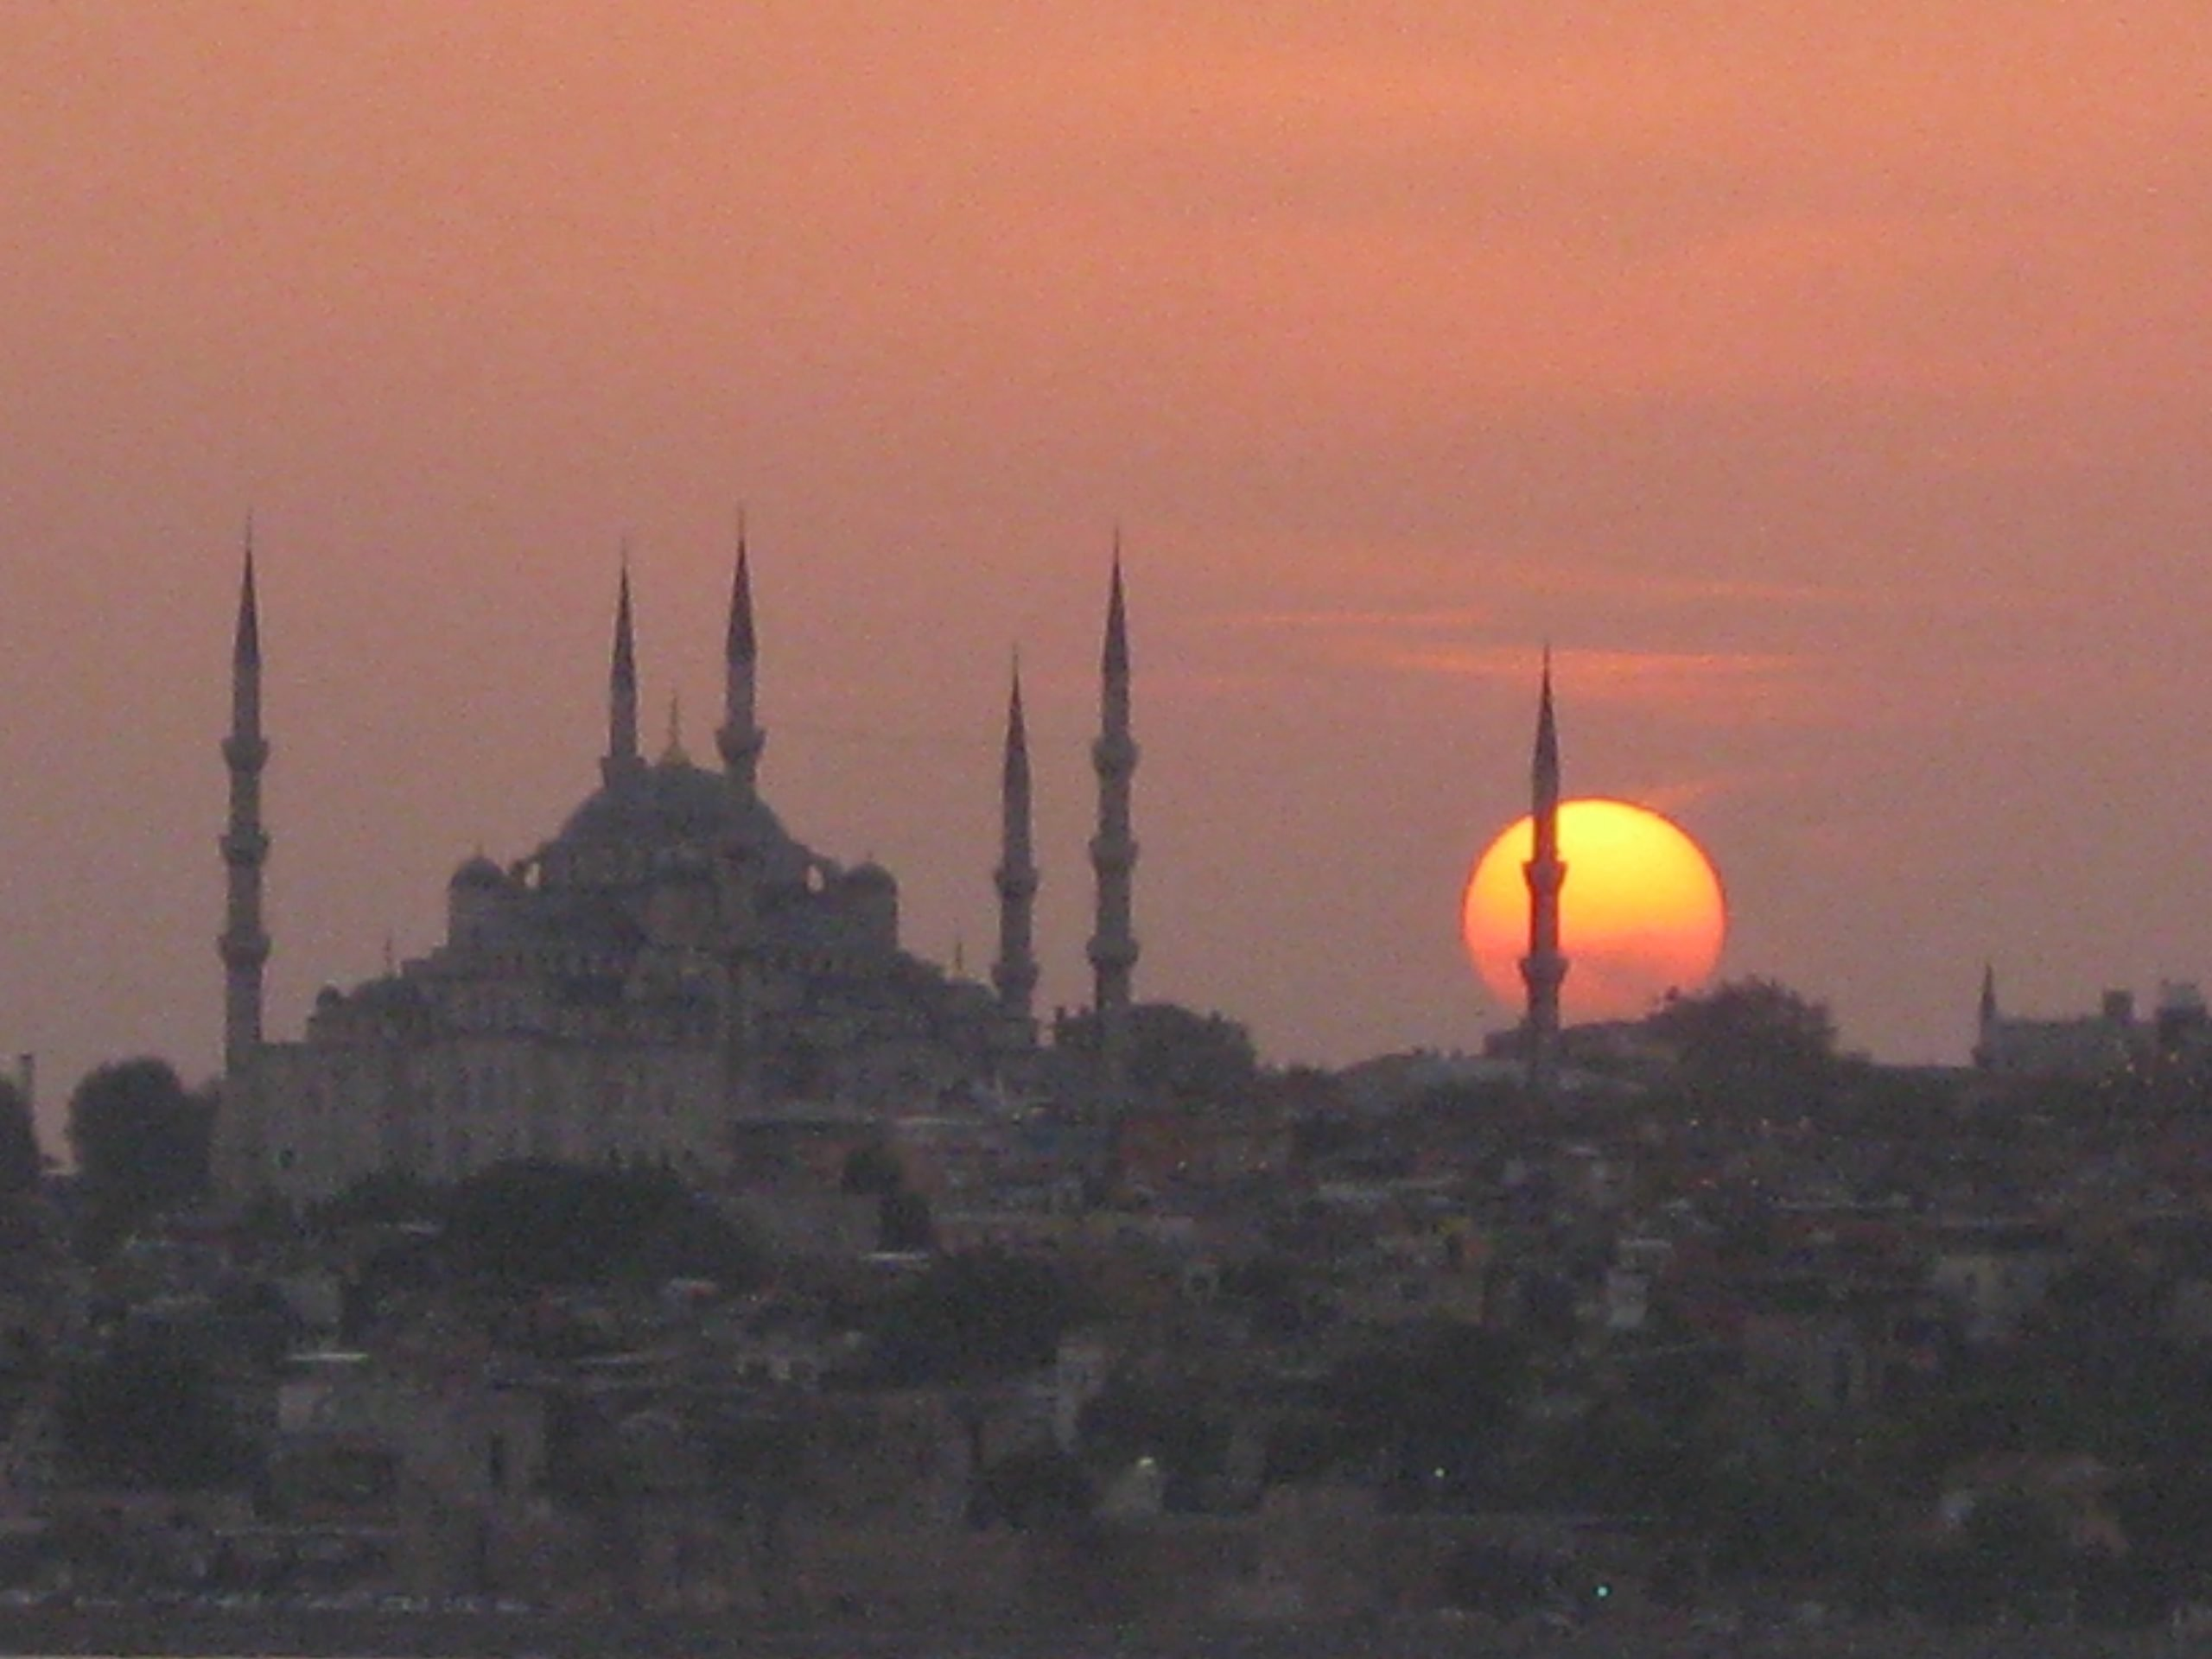 Sunset over Istanbul, Turkey Photo copyright: Helen Holter